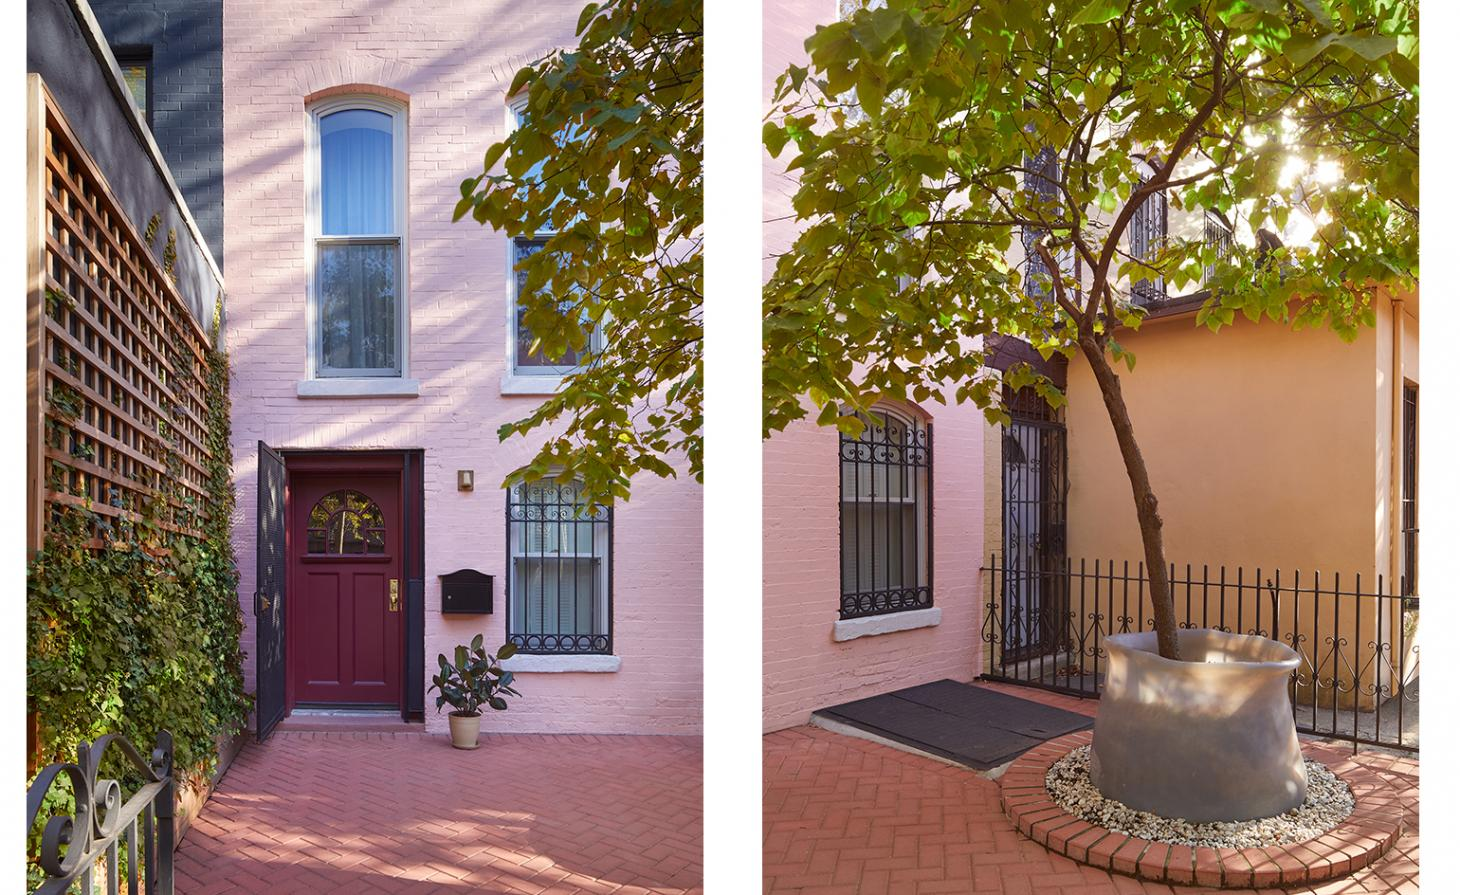 Boerum Hill Townhouse's pink front facade